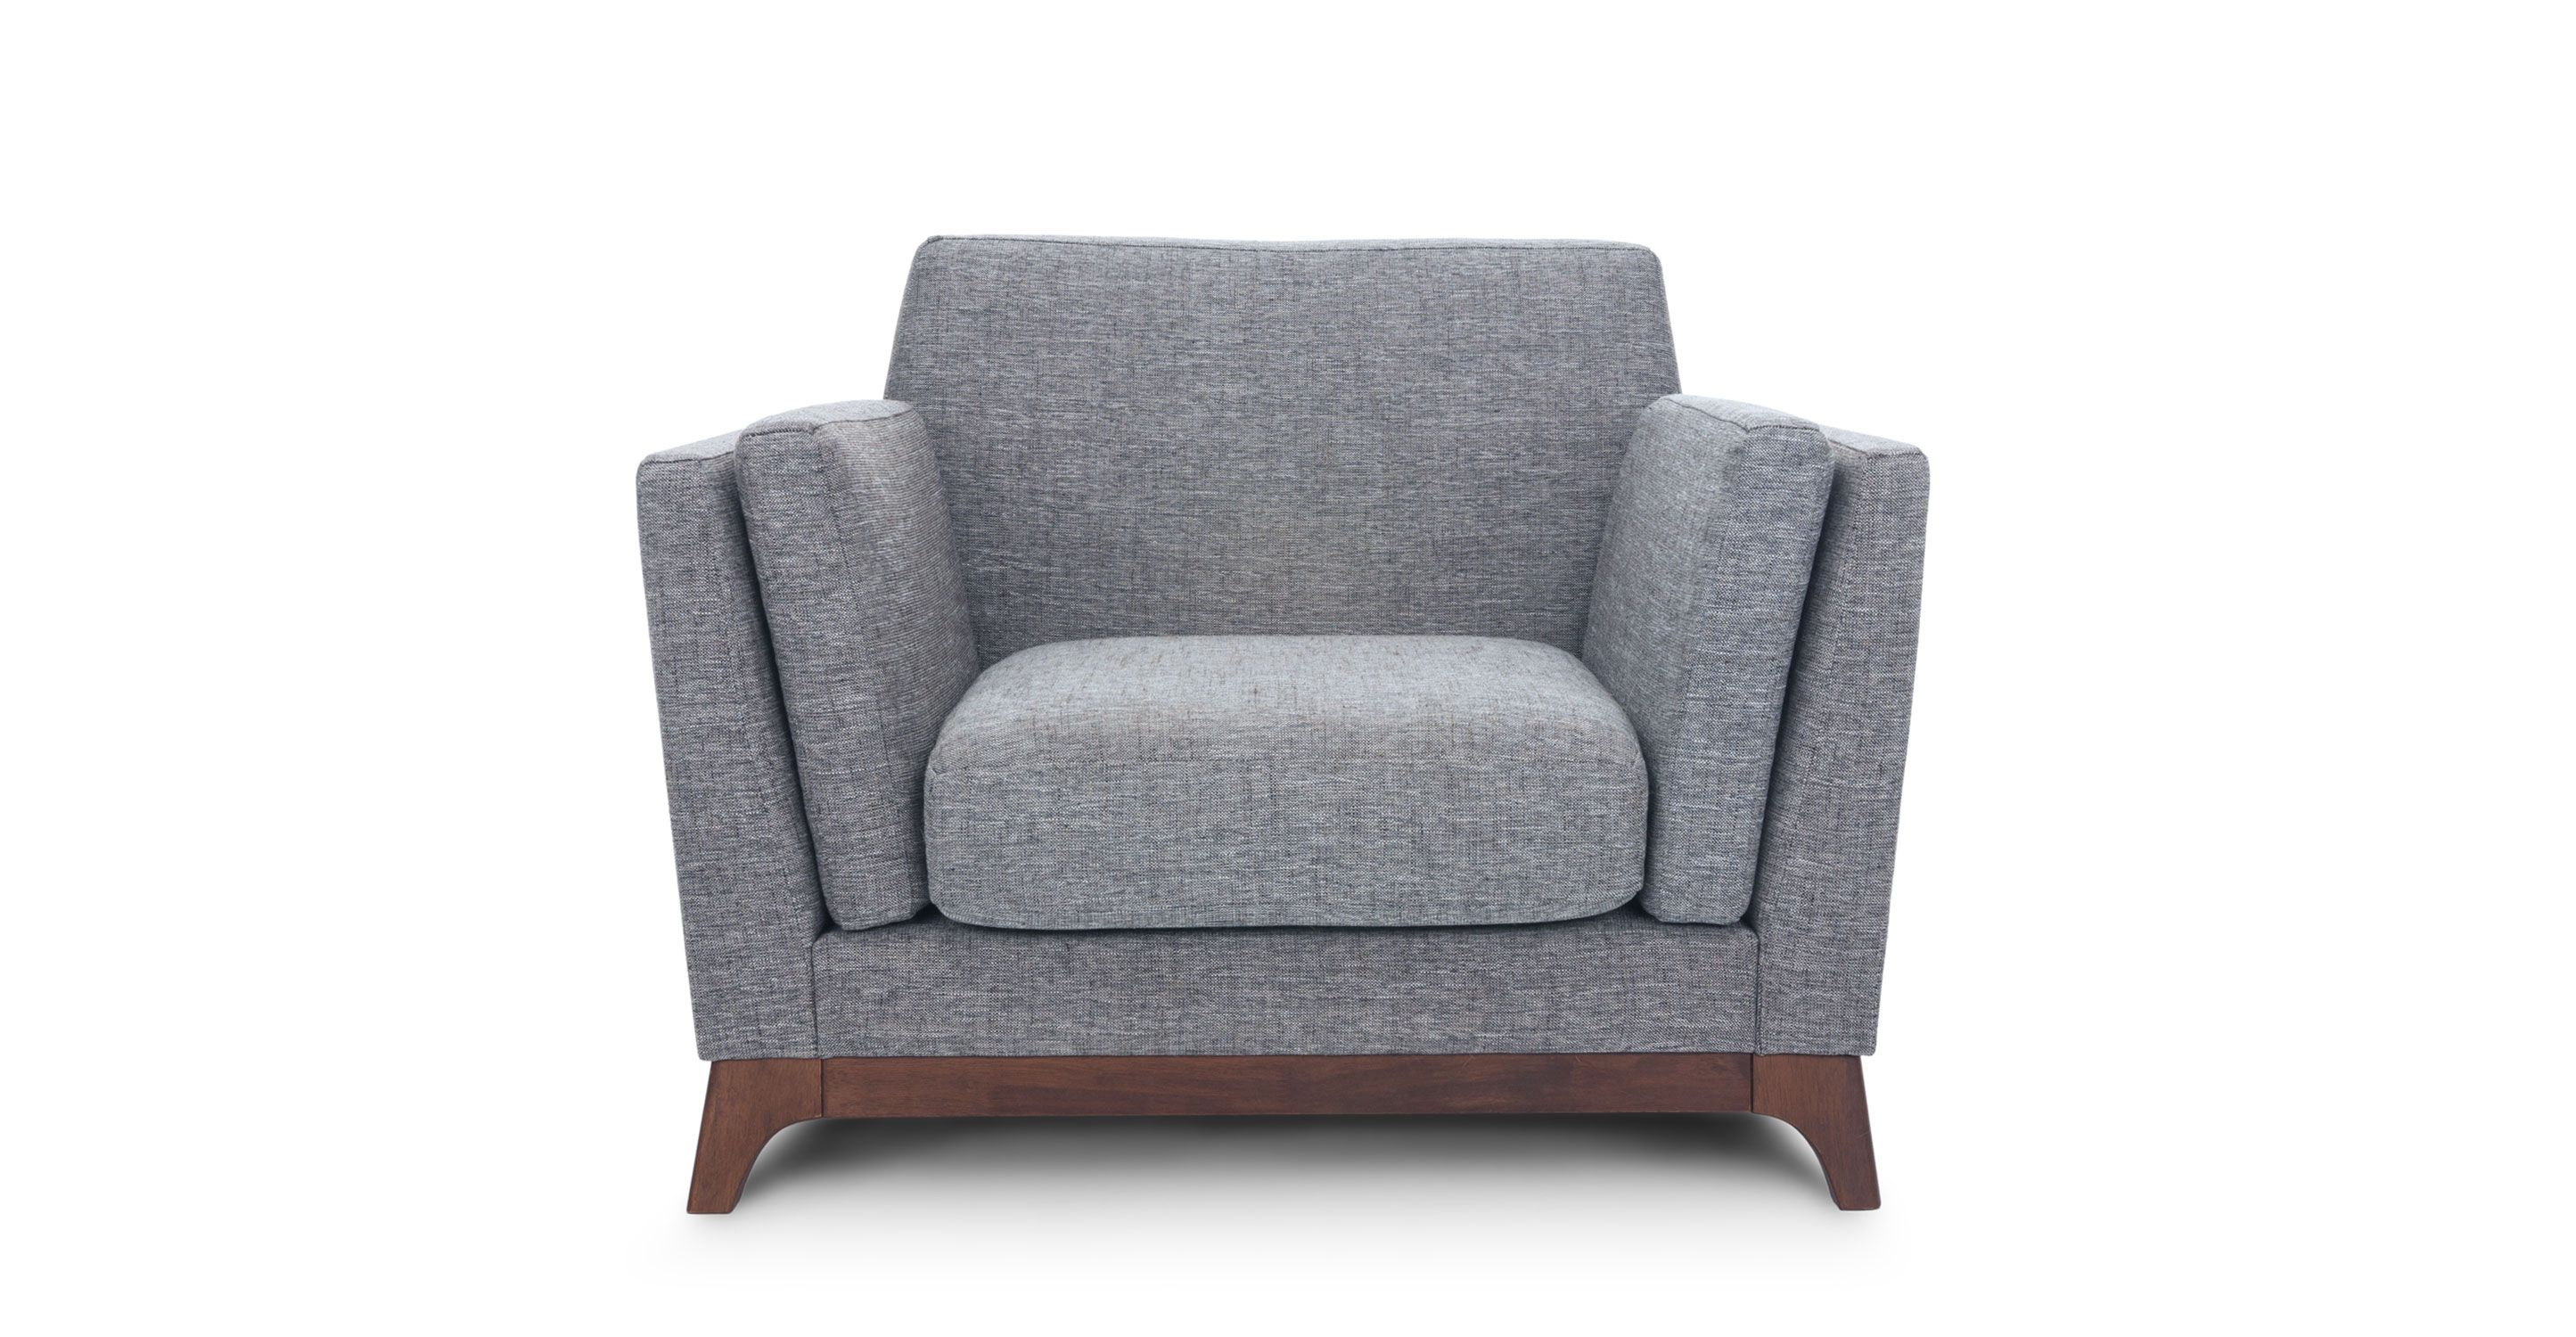 scandinavian furniture vancouver. Article Offers Stylish Modern, Mid-century And Scandinavian Furniture From World Renowned Designers At Accessible Prices. Vancouver E